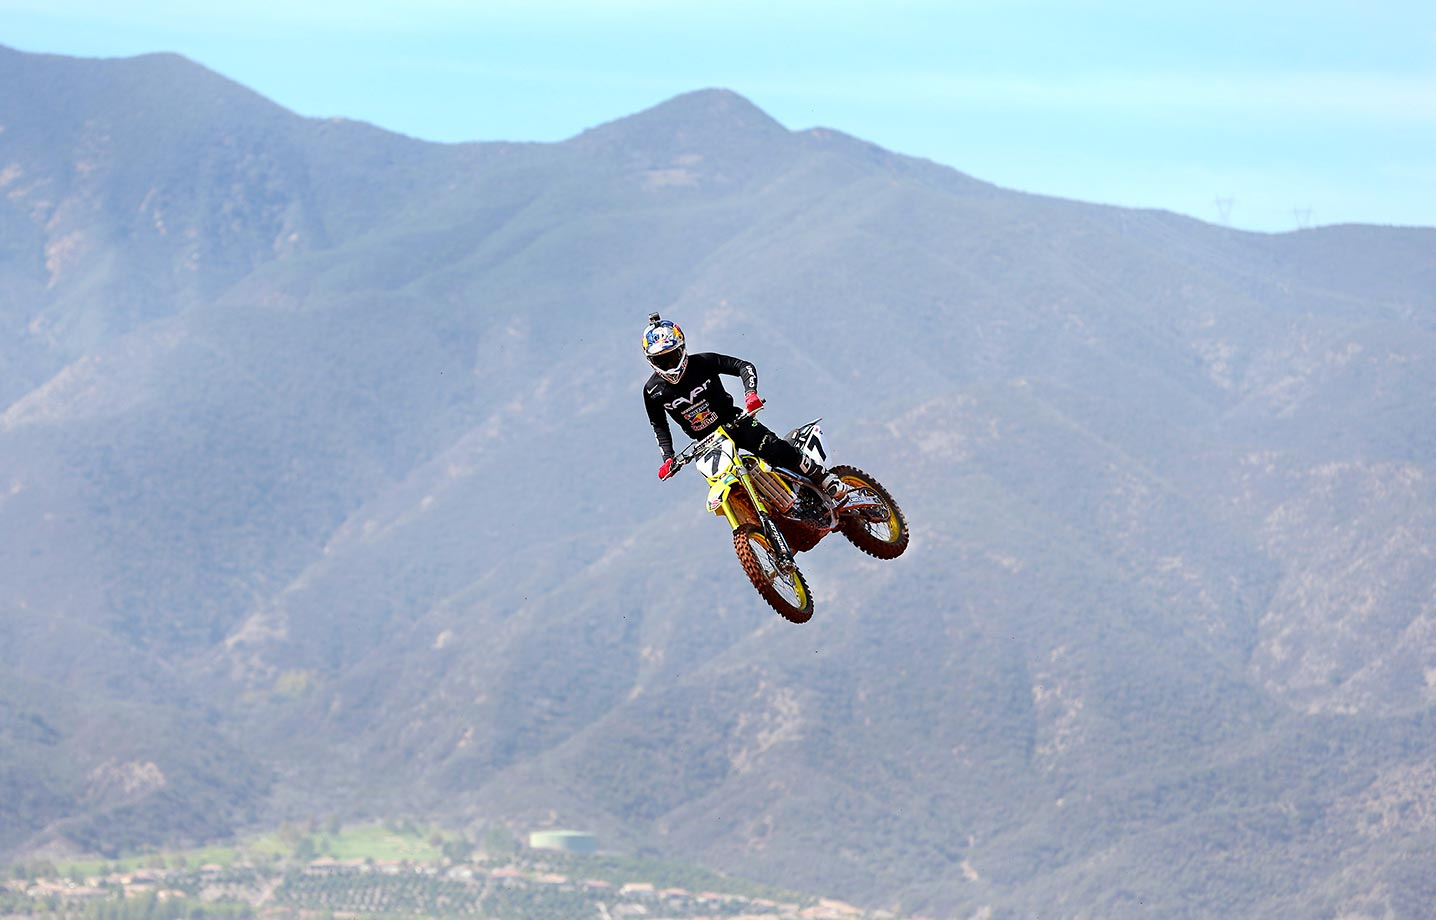 Stewart in mid air and dwarfed by the mountains of southern California as a backdrop.